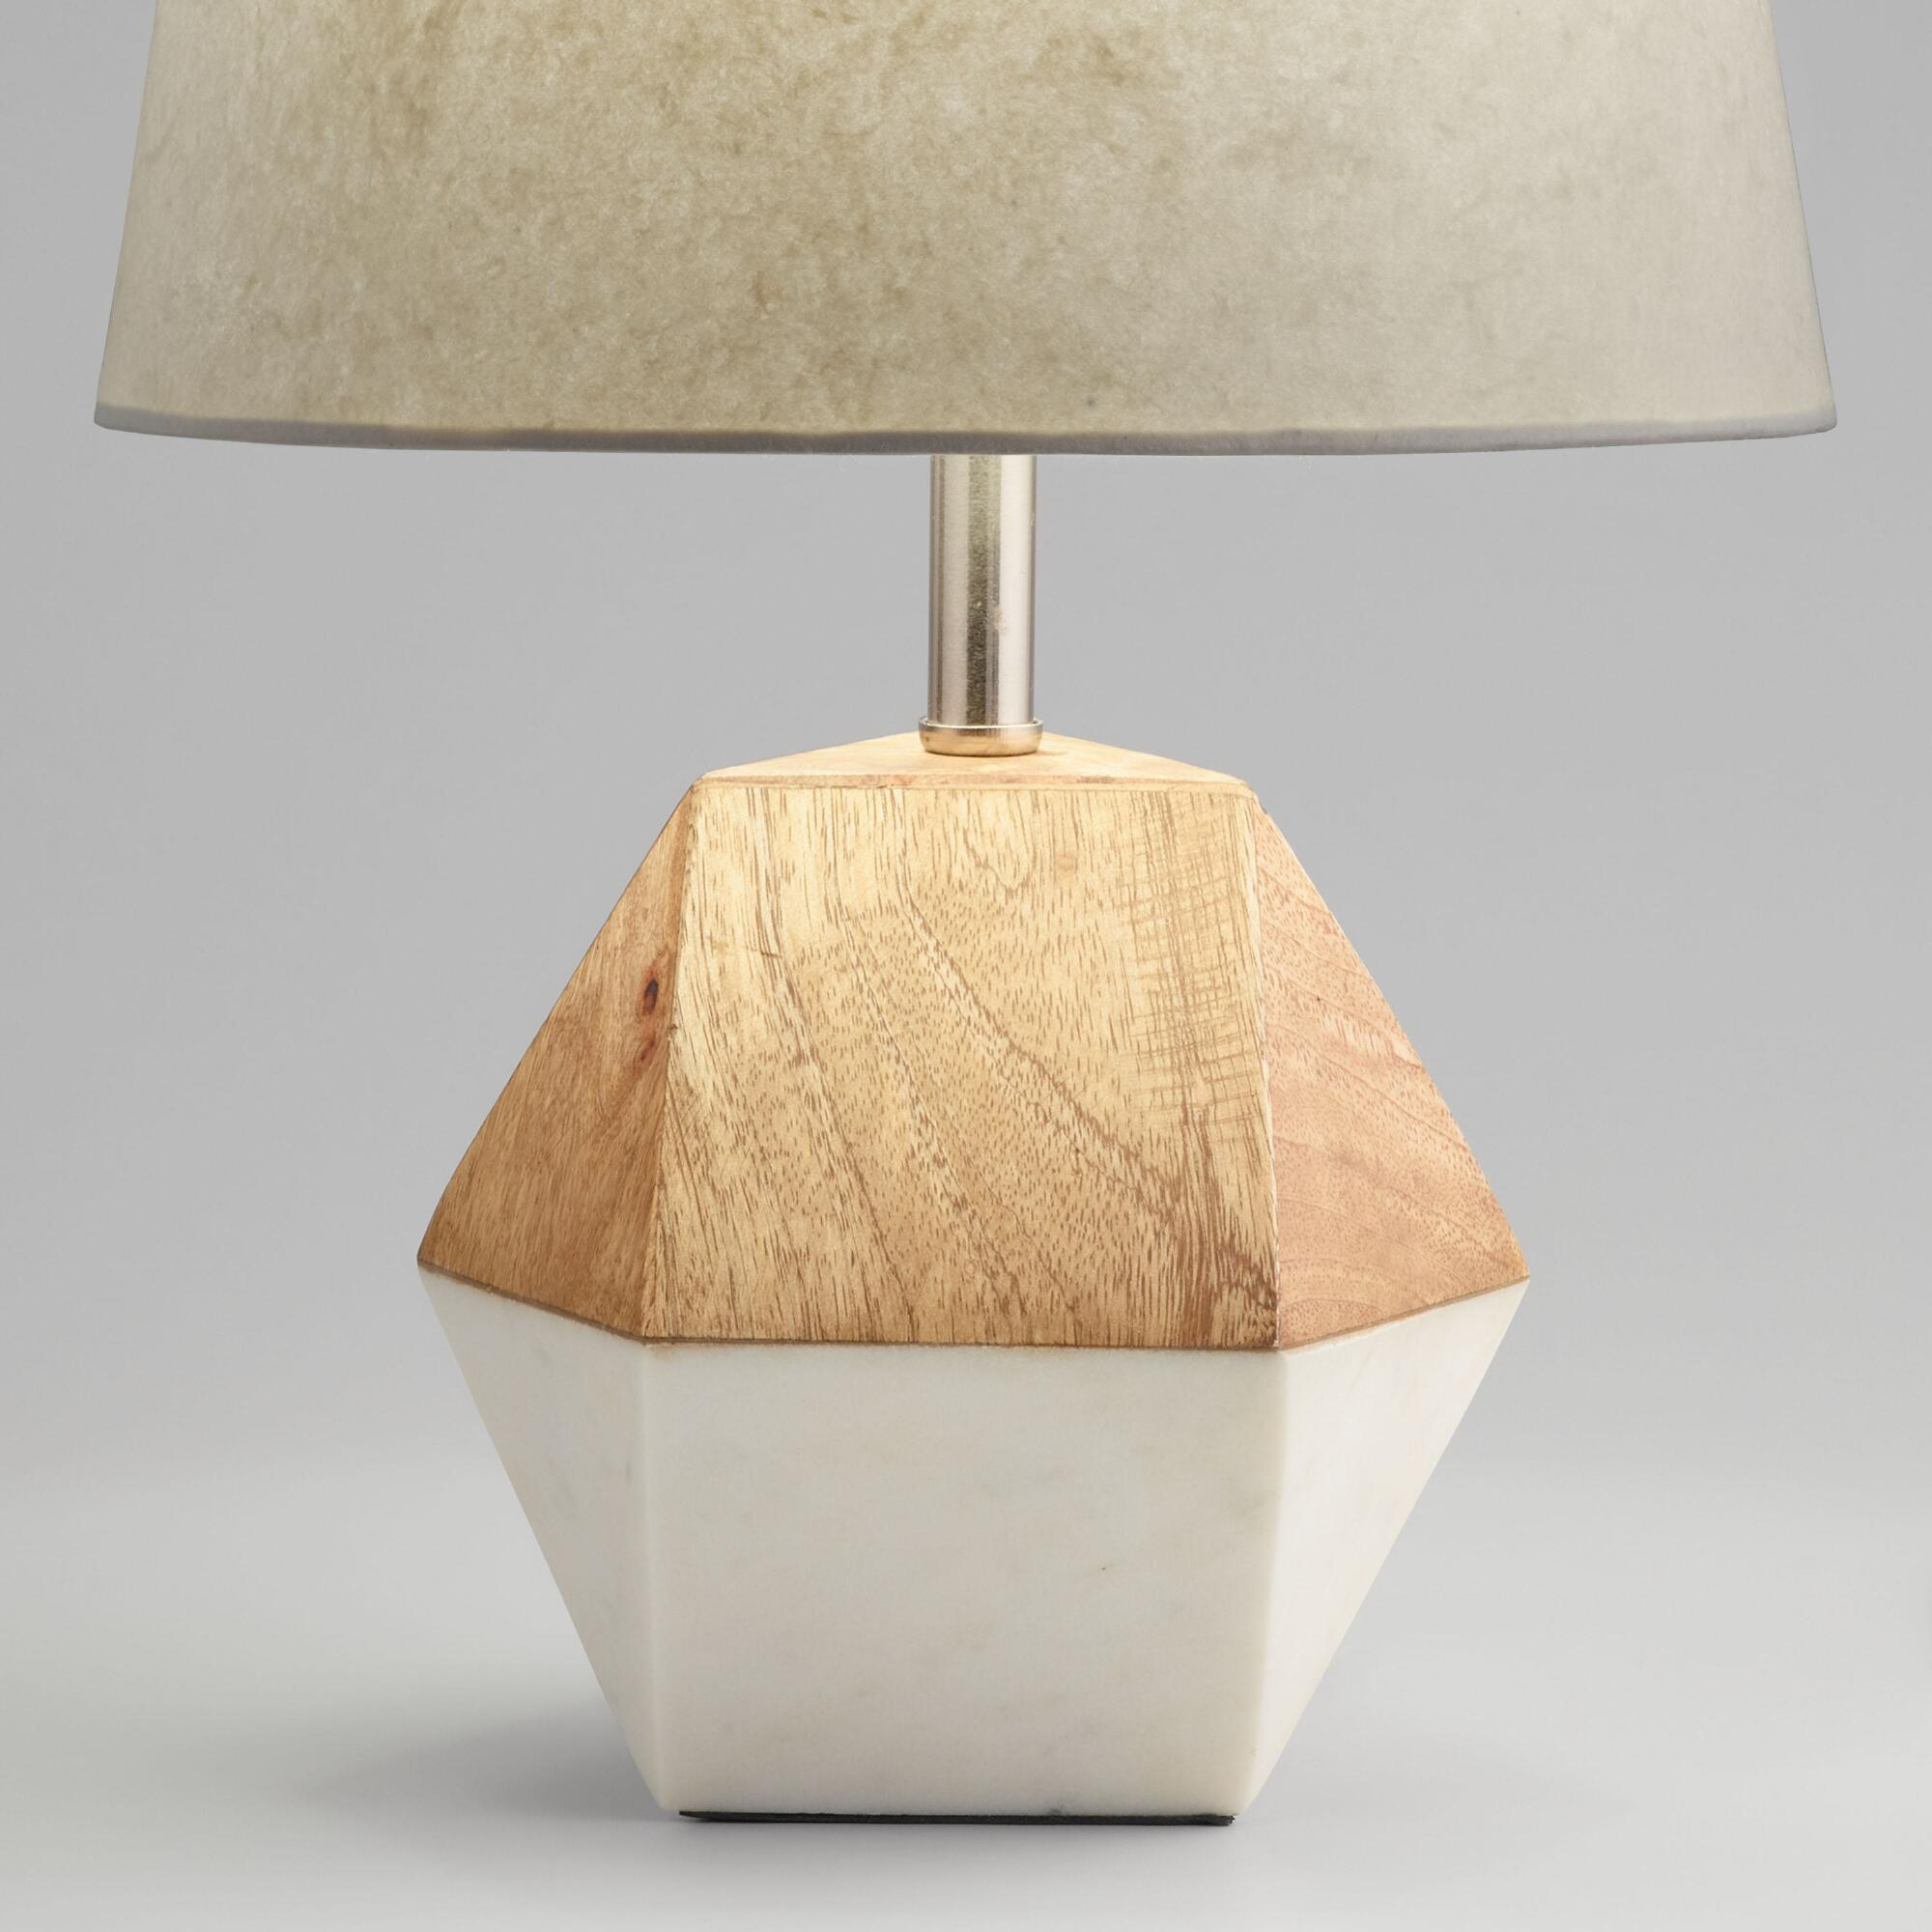 accent lighting unique table lamps world market iipsrv fcgi uplight white marble and wood liam lamp base unfinished furniture oversized patio chairs inexpensive home decor square